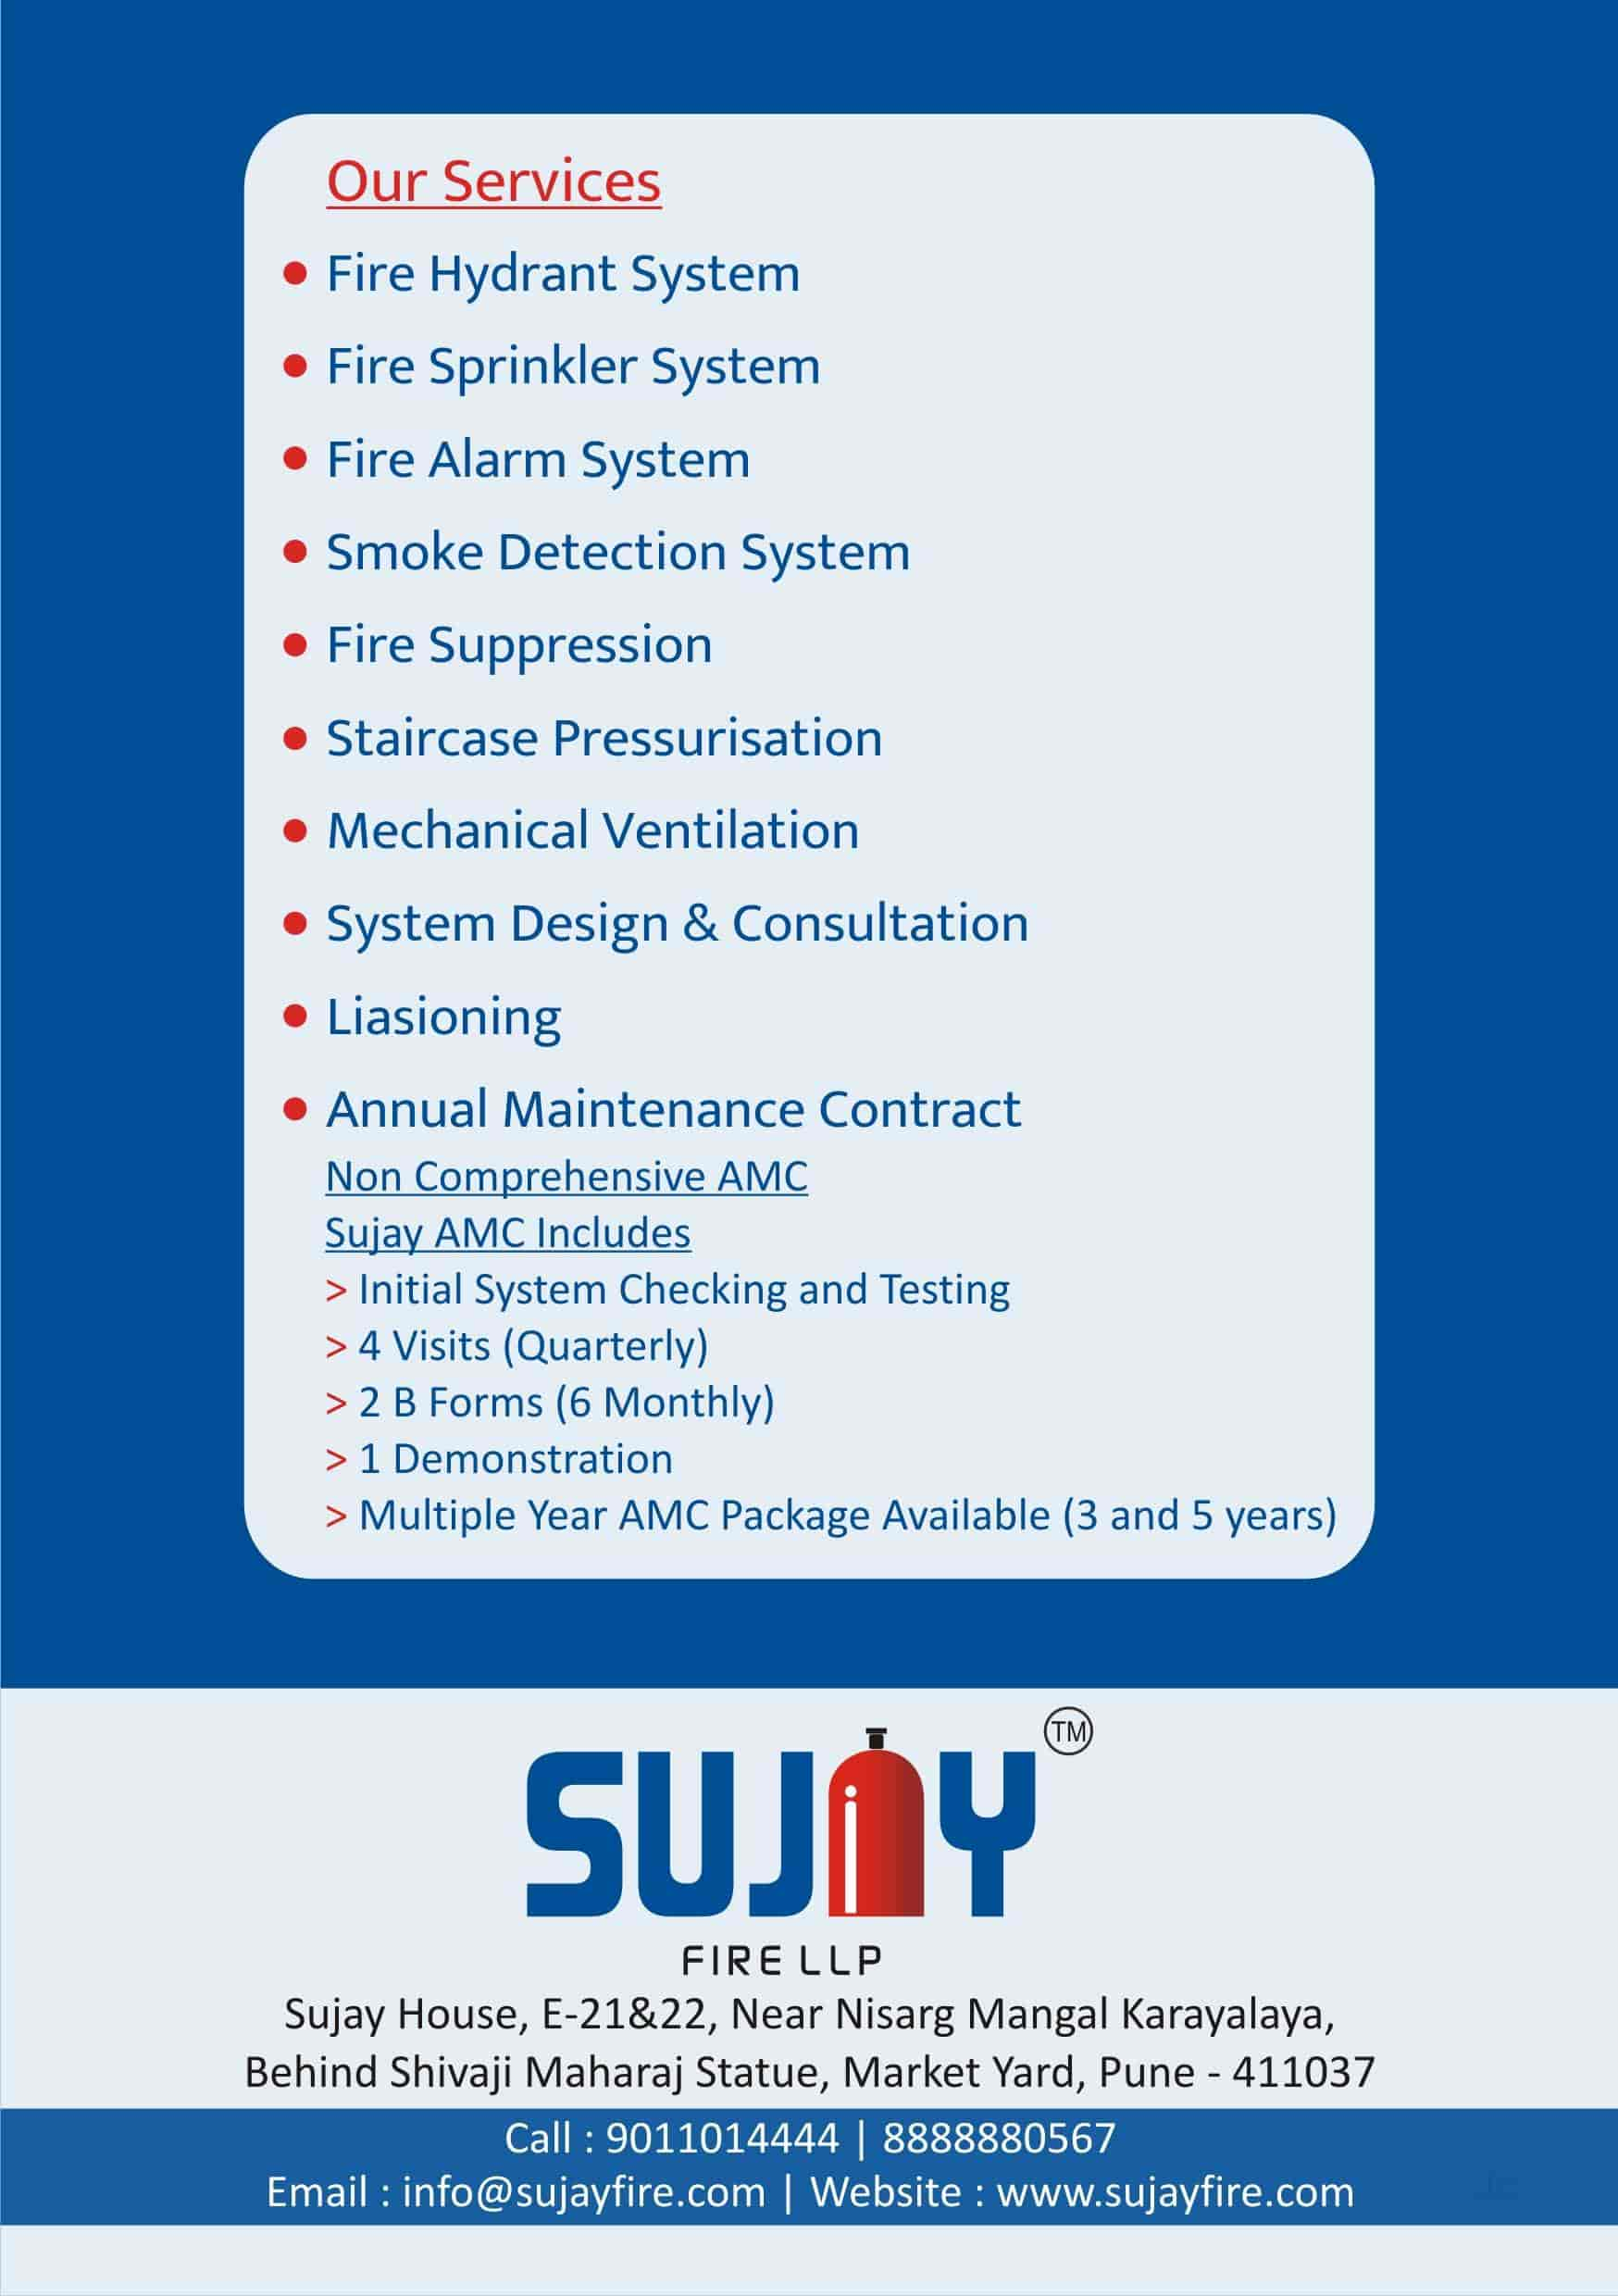 Sujay Fire LLP, Market Yard - Fire Safety Equipment Dealers in Pune